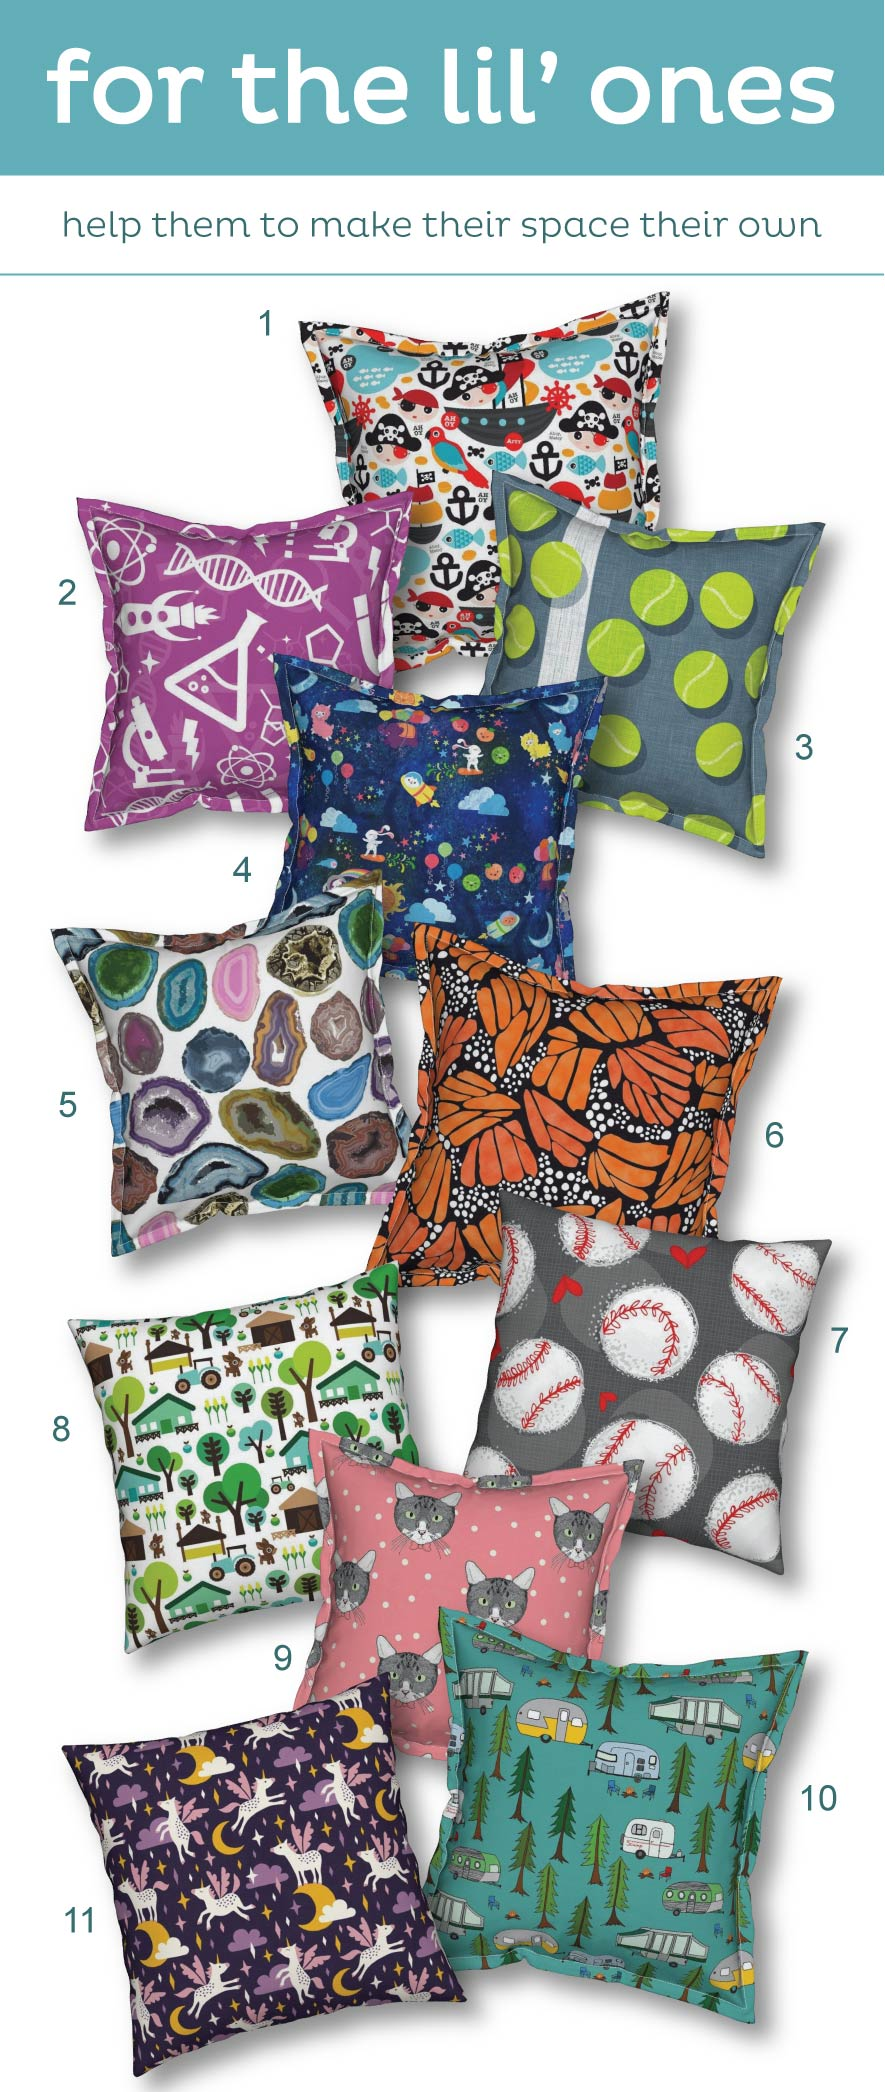 In order of appearance: 1)   Pirate Ship and Parrot Sailing Boat Adventure Theme for Boys Serama Pillow by littlesmilemakers  2)  Science Lamona Pillow by dmitriylo  3)  Balls Serama Pillow by spellstone  4)  Cosmic Kawaii Serama Pillow by lyddiedoodles  5)  Geode Serama Pillow by tinamhall  6)  Orange Monarch Butterfly Serama Pillow by thestylesafari  7)  Baseball Lovers Unite Large Scale Catalan Pillow by pinky_wittingslow  8)  Retro Farm Animal Kids Pattern Catalan Pillow by littlesmilemakers  9)  Polka Cats Pink Serama Pillow by lydia_meiying  10)  Campers in the Park Serama Pillow by jeannemcgee  11)  Unicorns in the Sky in Purple Dark Catalan Pillow by heleen_vd_thillart